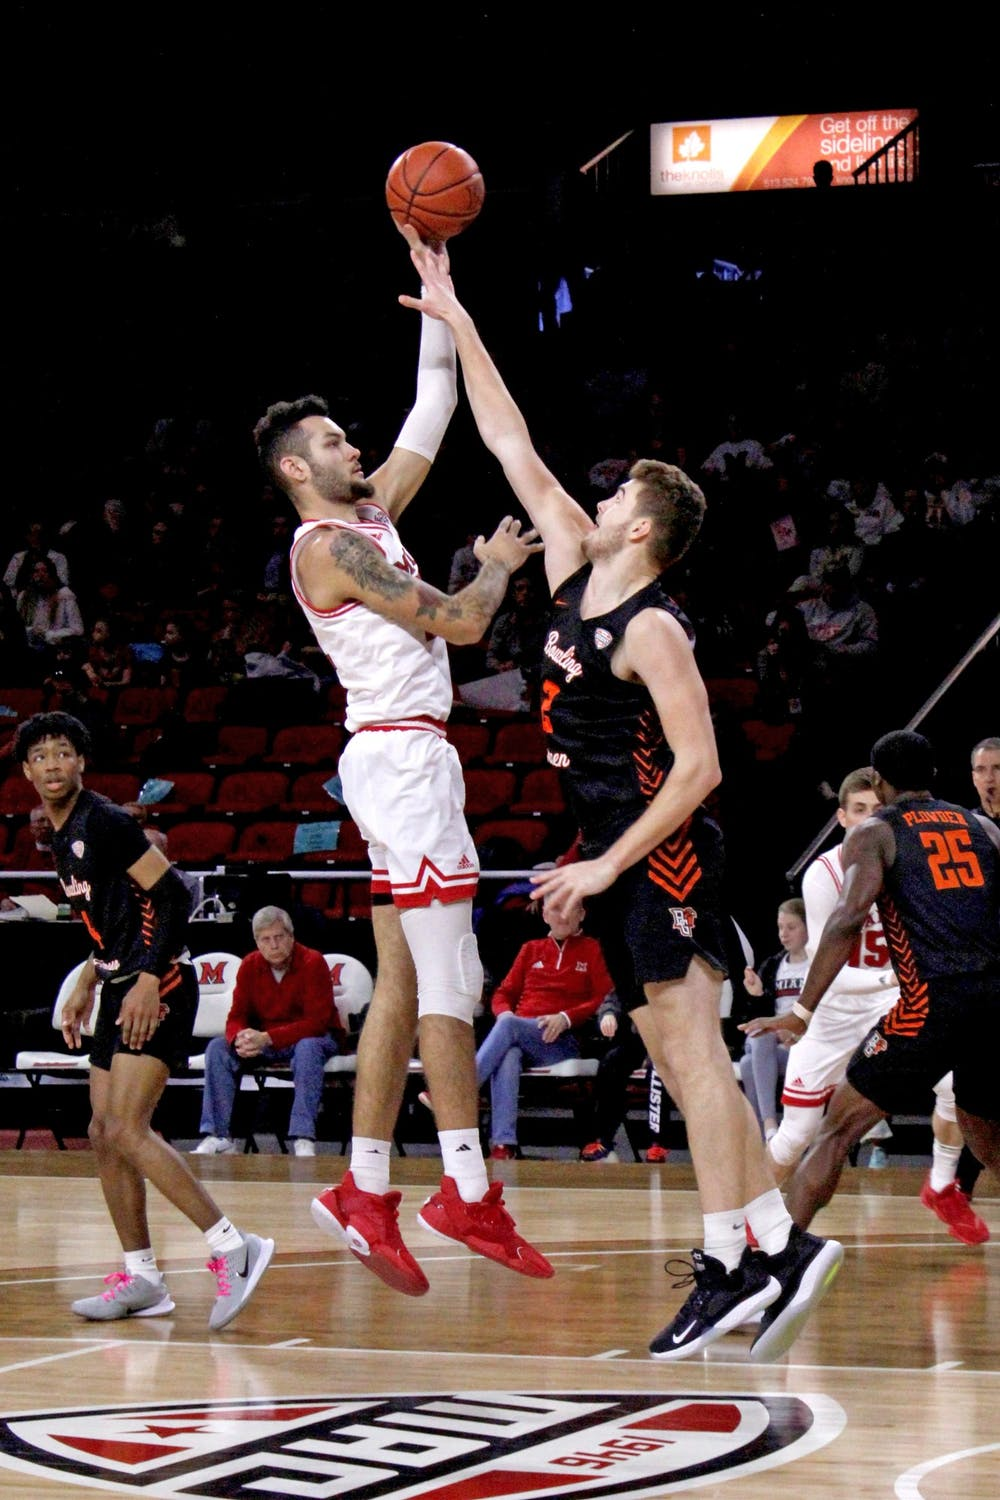 <p>Miami sophomore forward Eli McNamara attempts a hook shot over a Bowling Green defender during a 73-55 RedHawk victory over the Falcons on Feb. 29 at Millett Hall.</p>